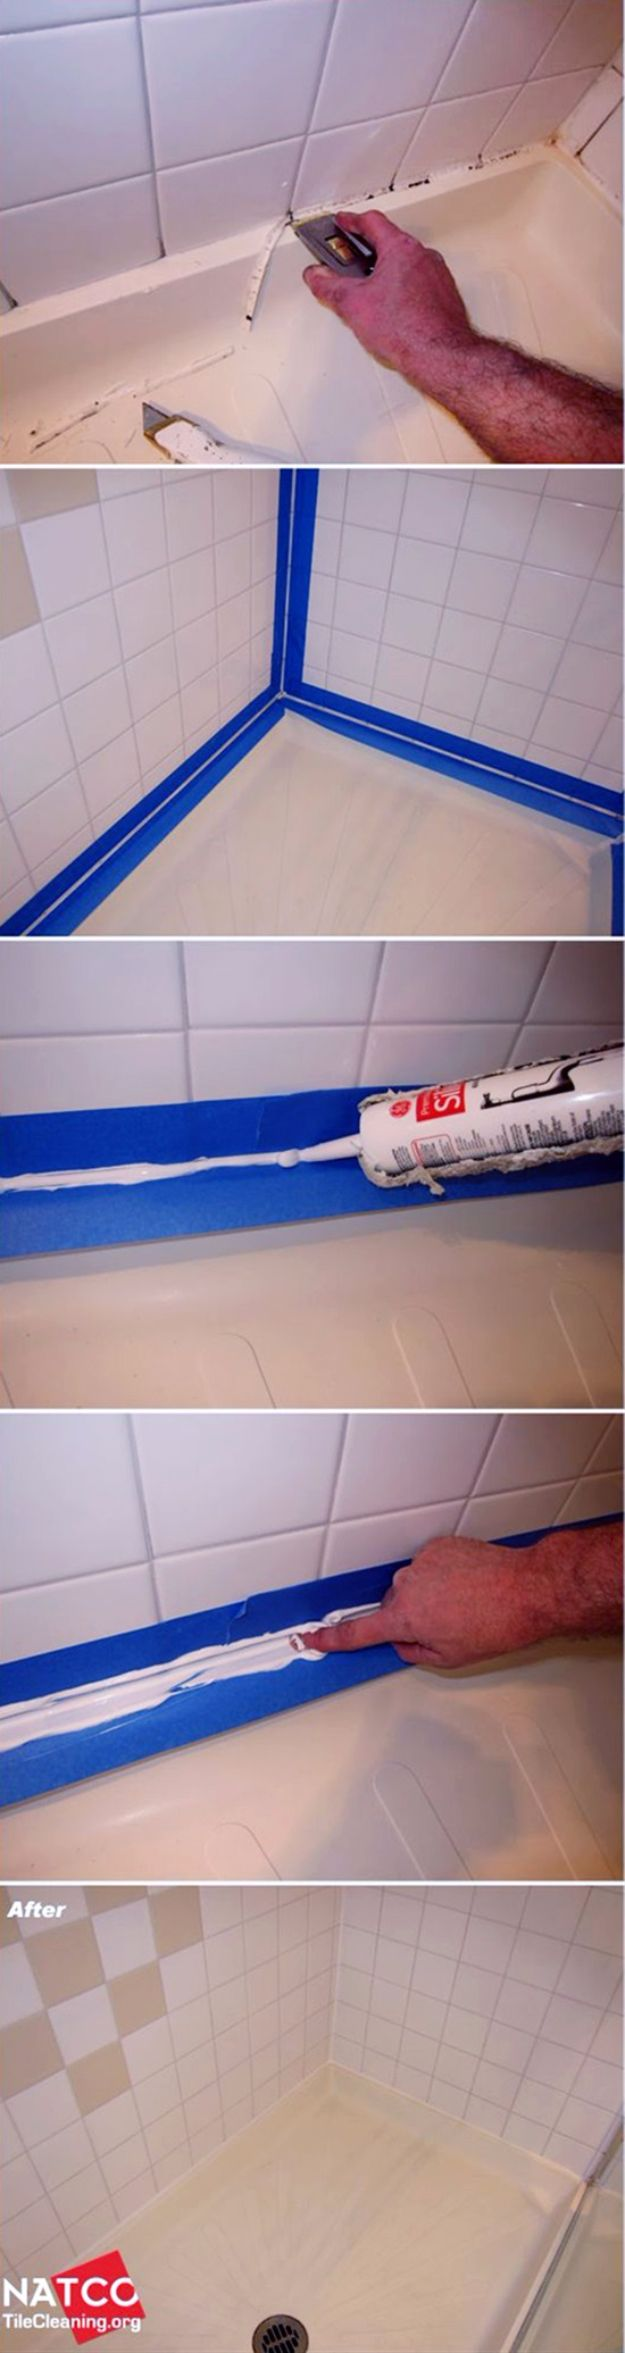 Easy Home Repair Hacks - Caulk Like A Pro - Quick Ways to Easily Fix Broken Things Around The House - DIY Tricks for Home Improvement and Repairs - Simple Solutions for Kitchen, Bath, Garage and Yard - Caulk, Grout, Wall Repair and Wood Patching and Staining #hacks #homeimprovement